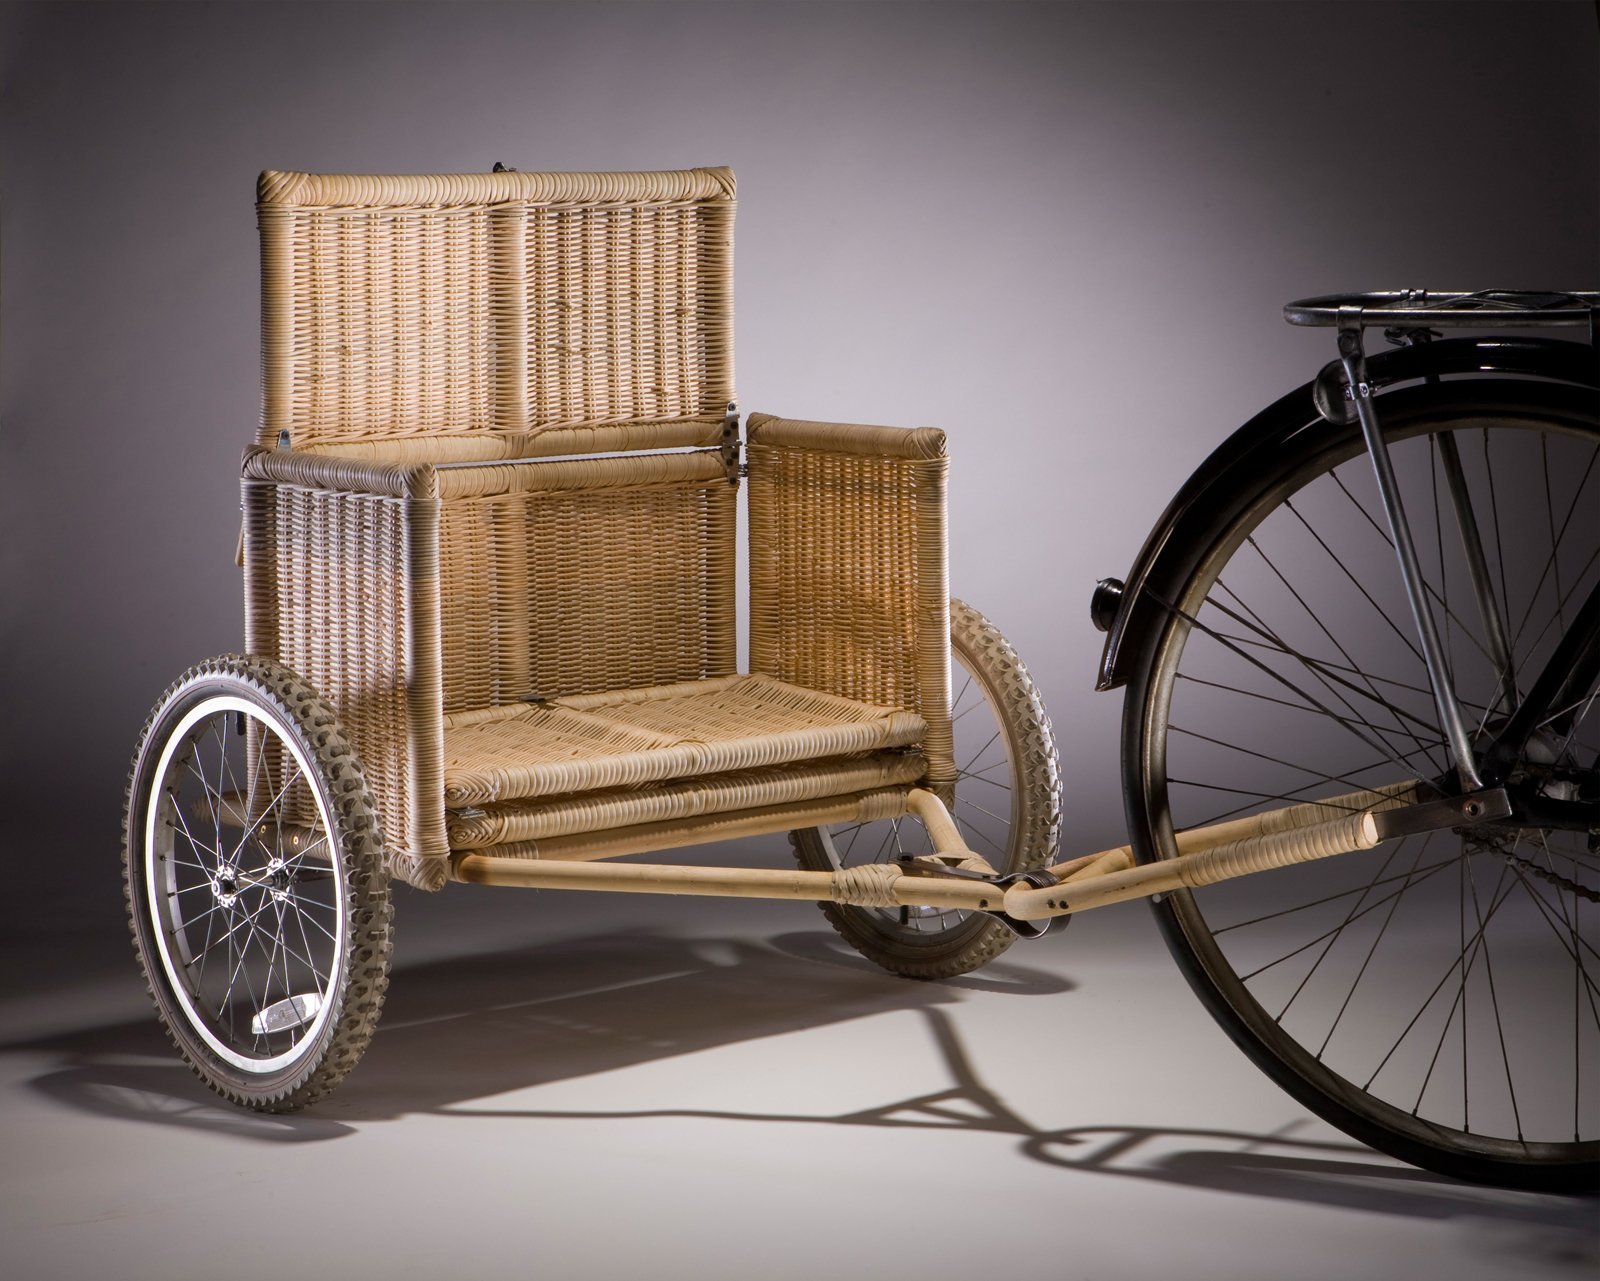 Samarth Bicycle Trailer, prototype. Radhika Bhalla (Indian, b. 1983). Designed United States, deployed India, 2008–present. Locally sourced bamboo, rattan, iron, jute, coconut fiber, wheels. Photo: Vahe D'Ala  Bicycle, Bicycle by Aileen Kwun from Why Design Now?